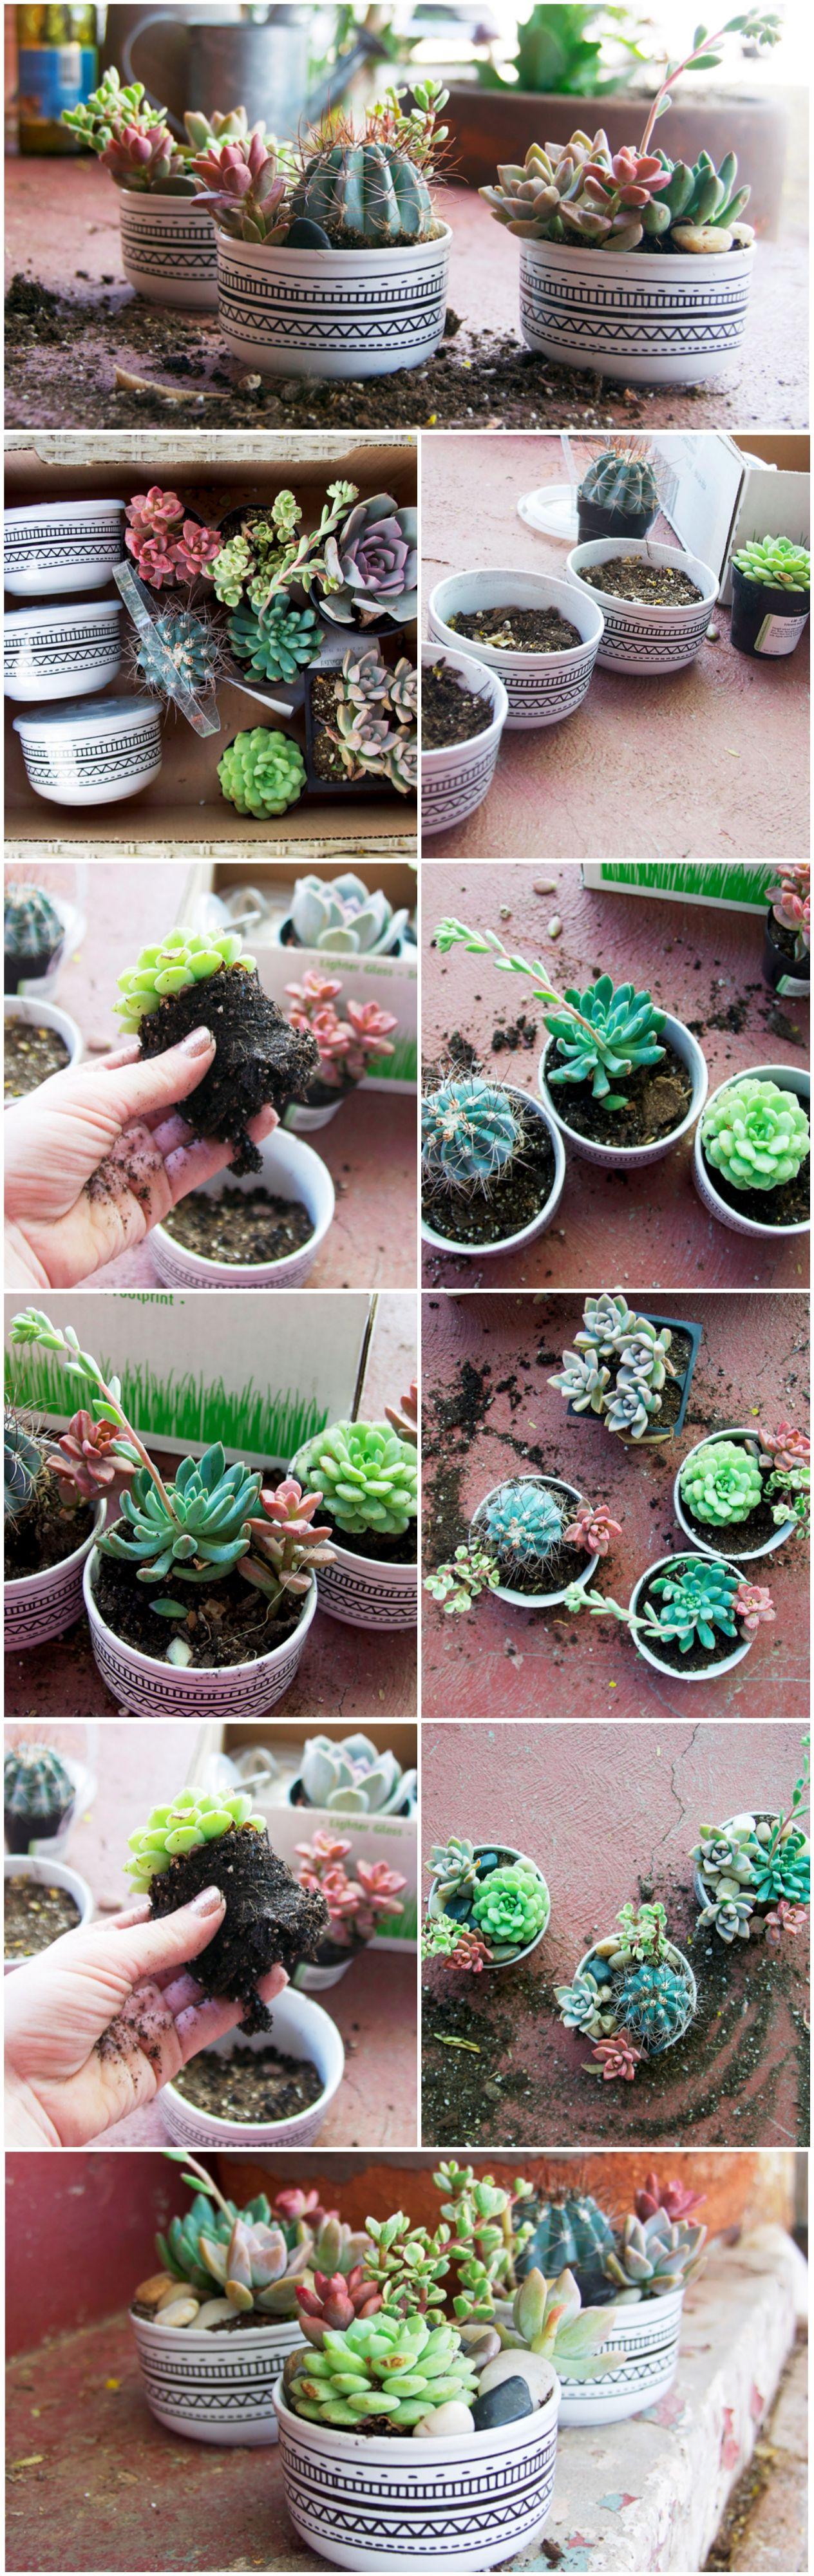 DIY your own mini succulent garden with this easy gardening tutorial!